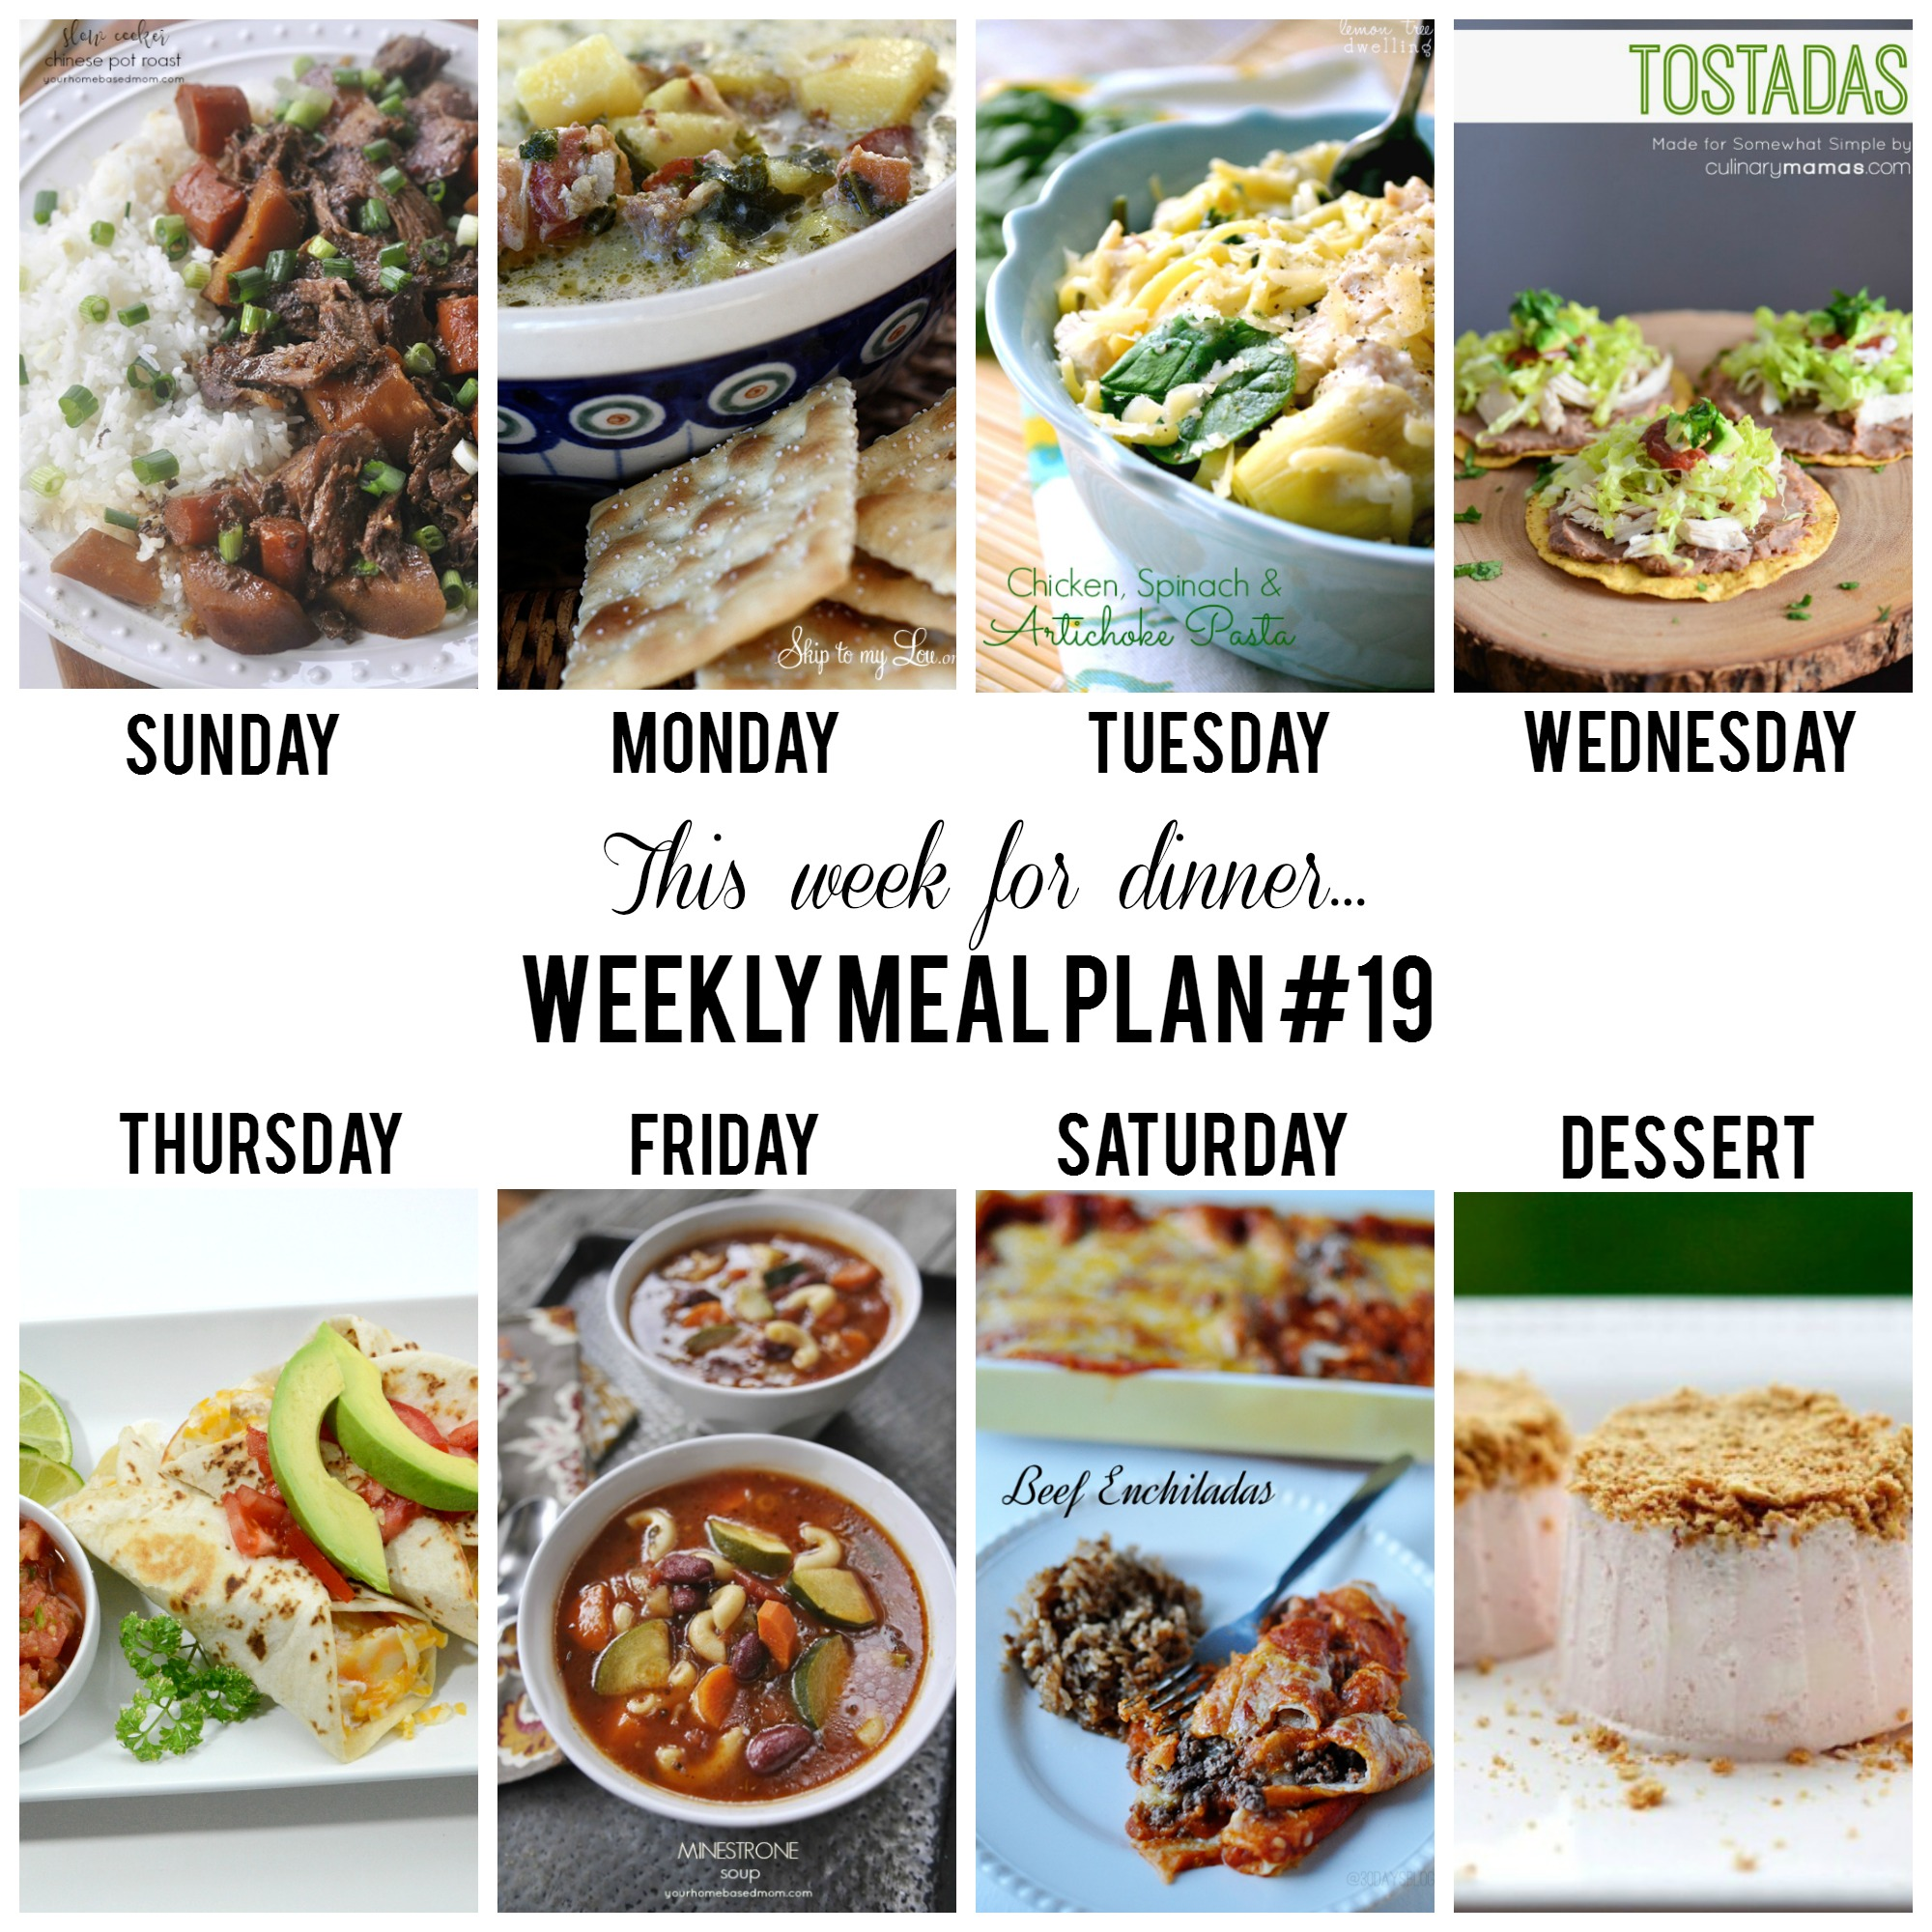 Weekly Meal Plan - A recipe for each day of the week!